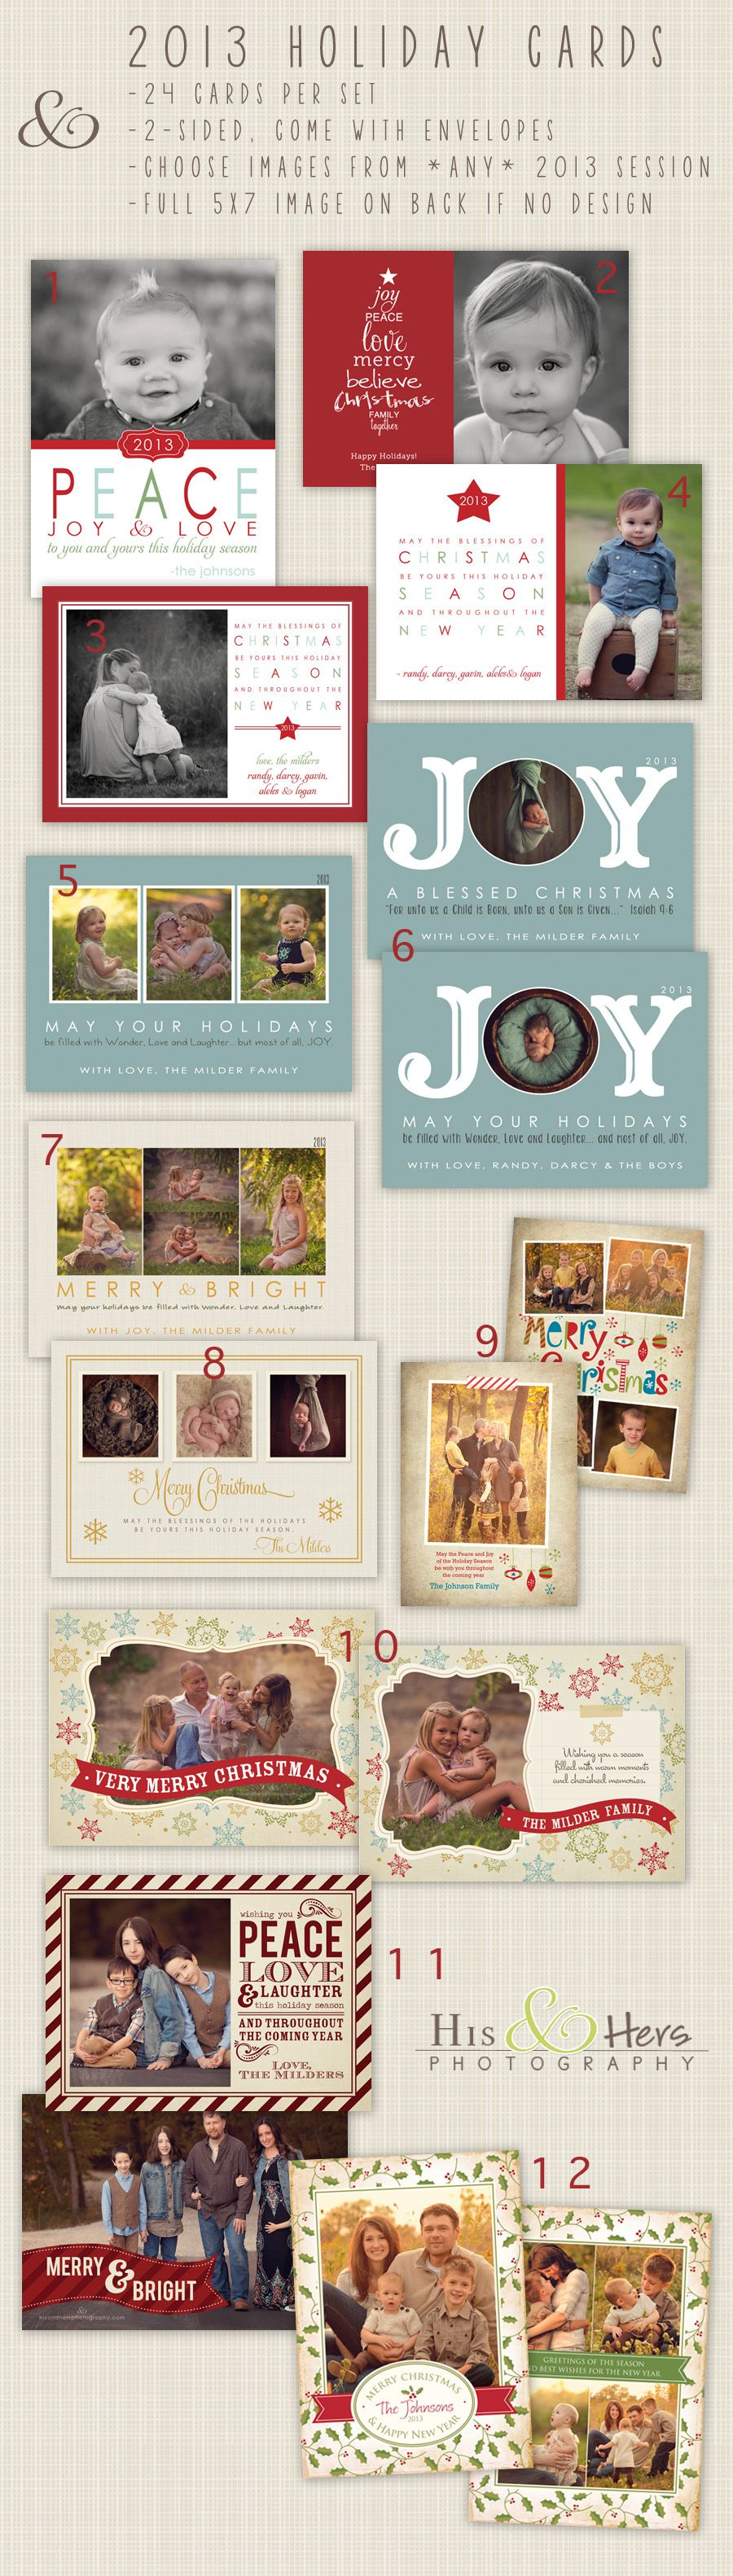 2013 Christmas & Holiday Cards